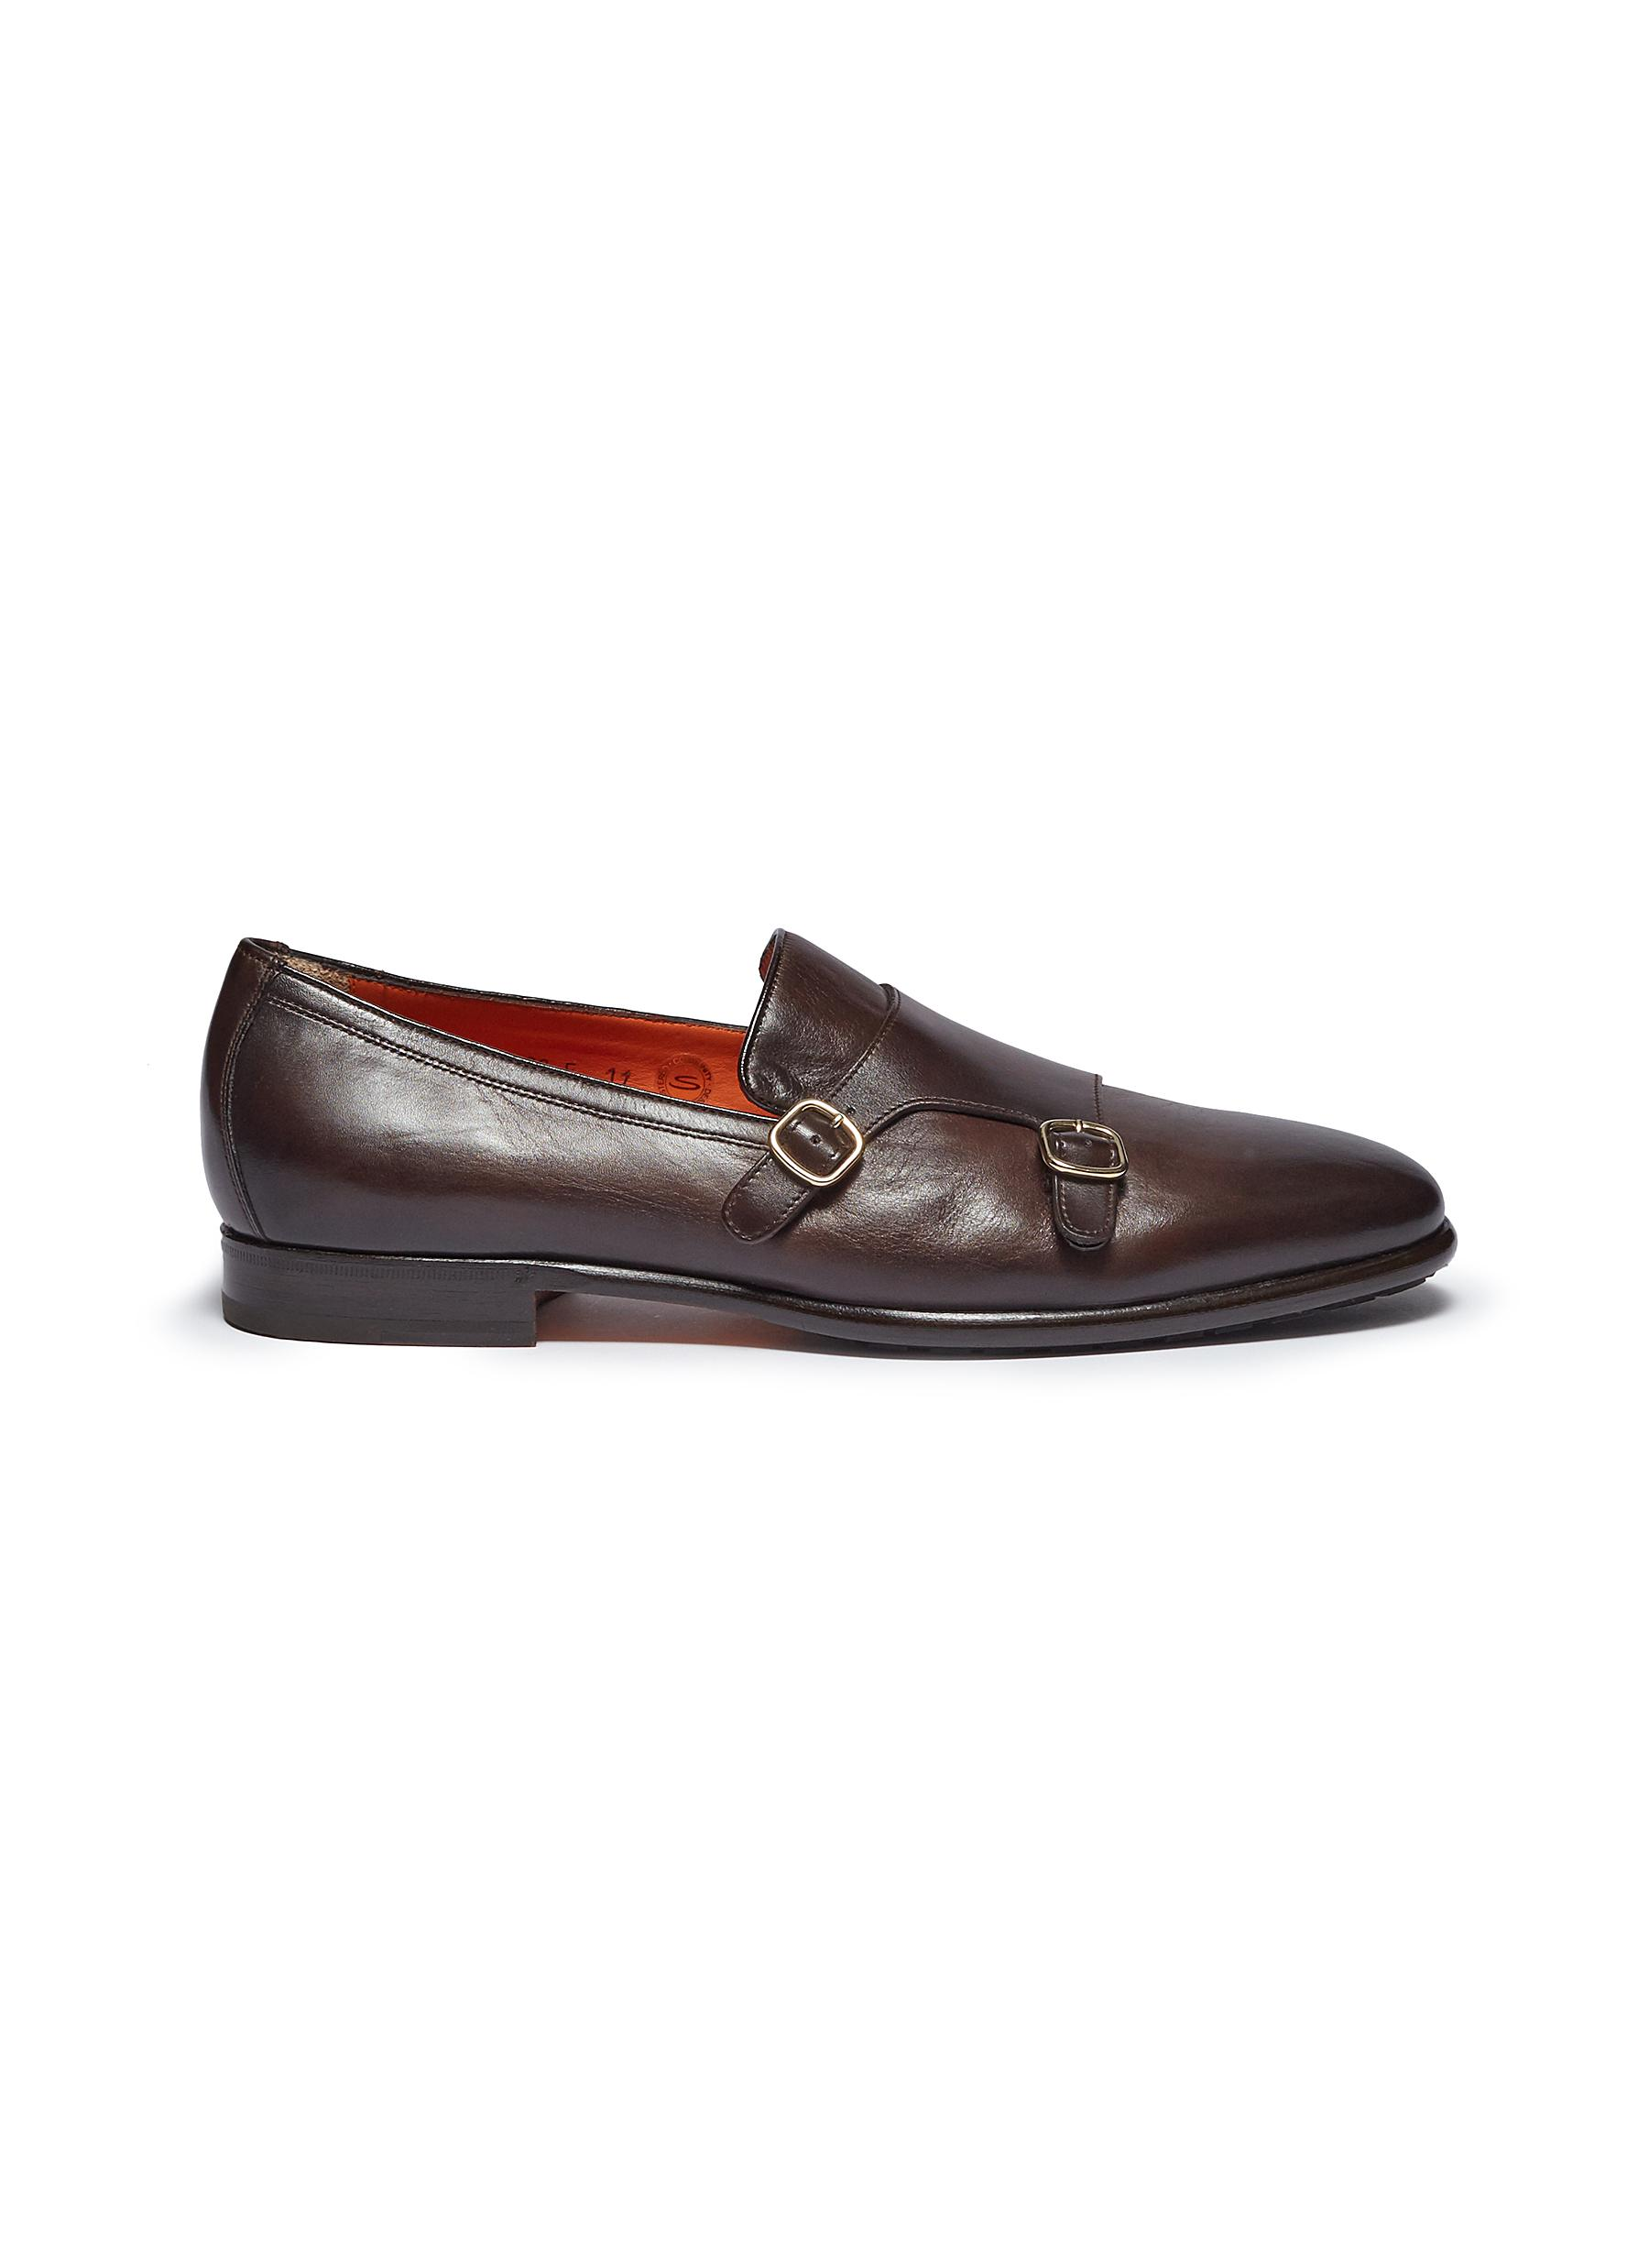 Double monk strap leather loafers by Santoni